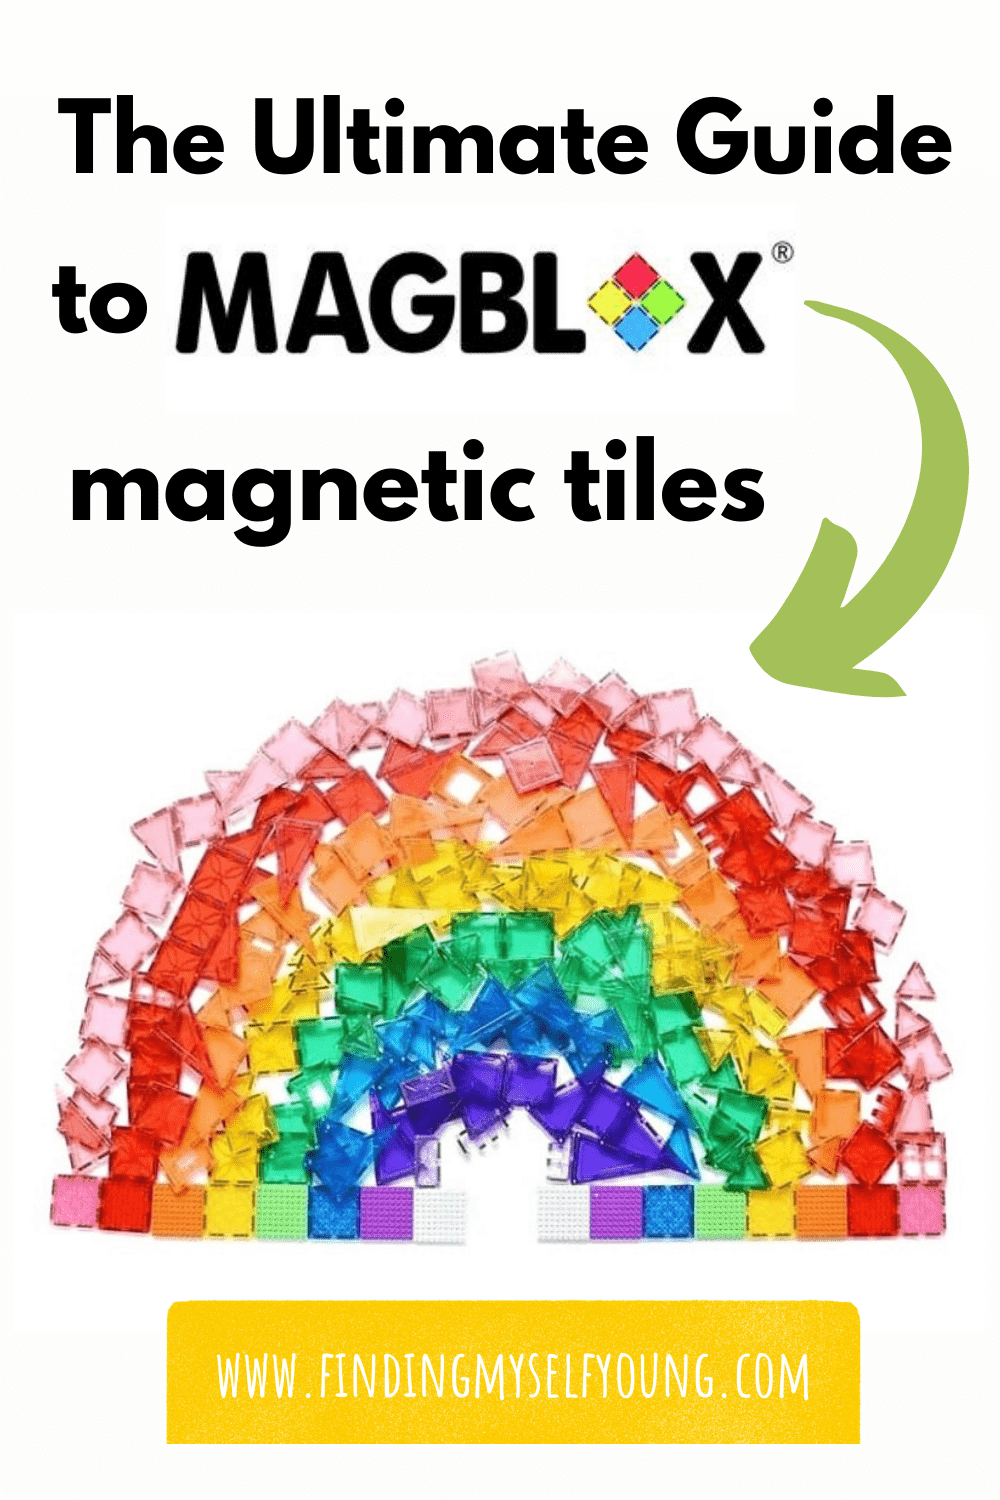 the ultimate guide to magblox magnetic tiles